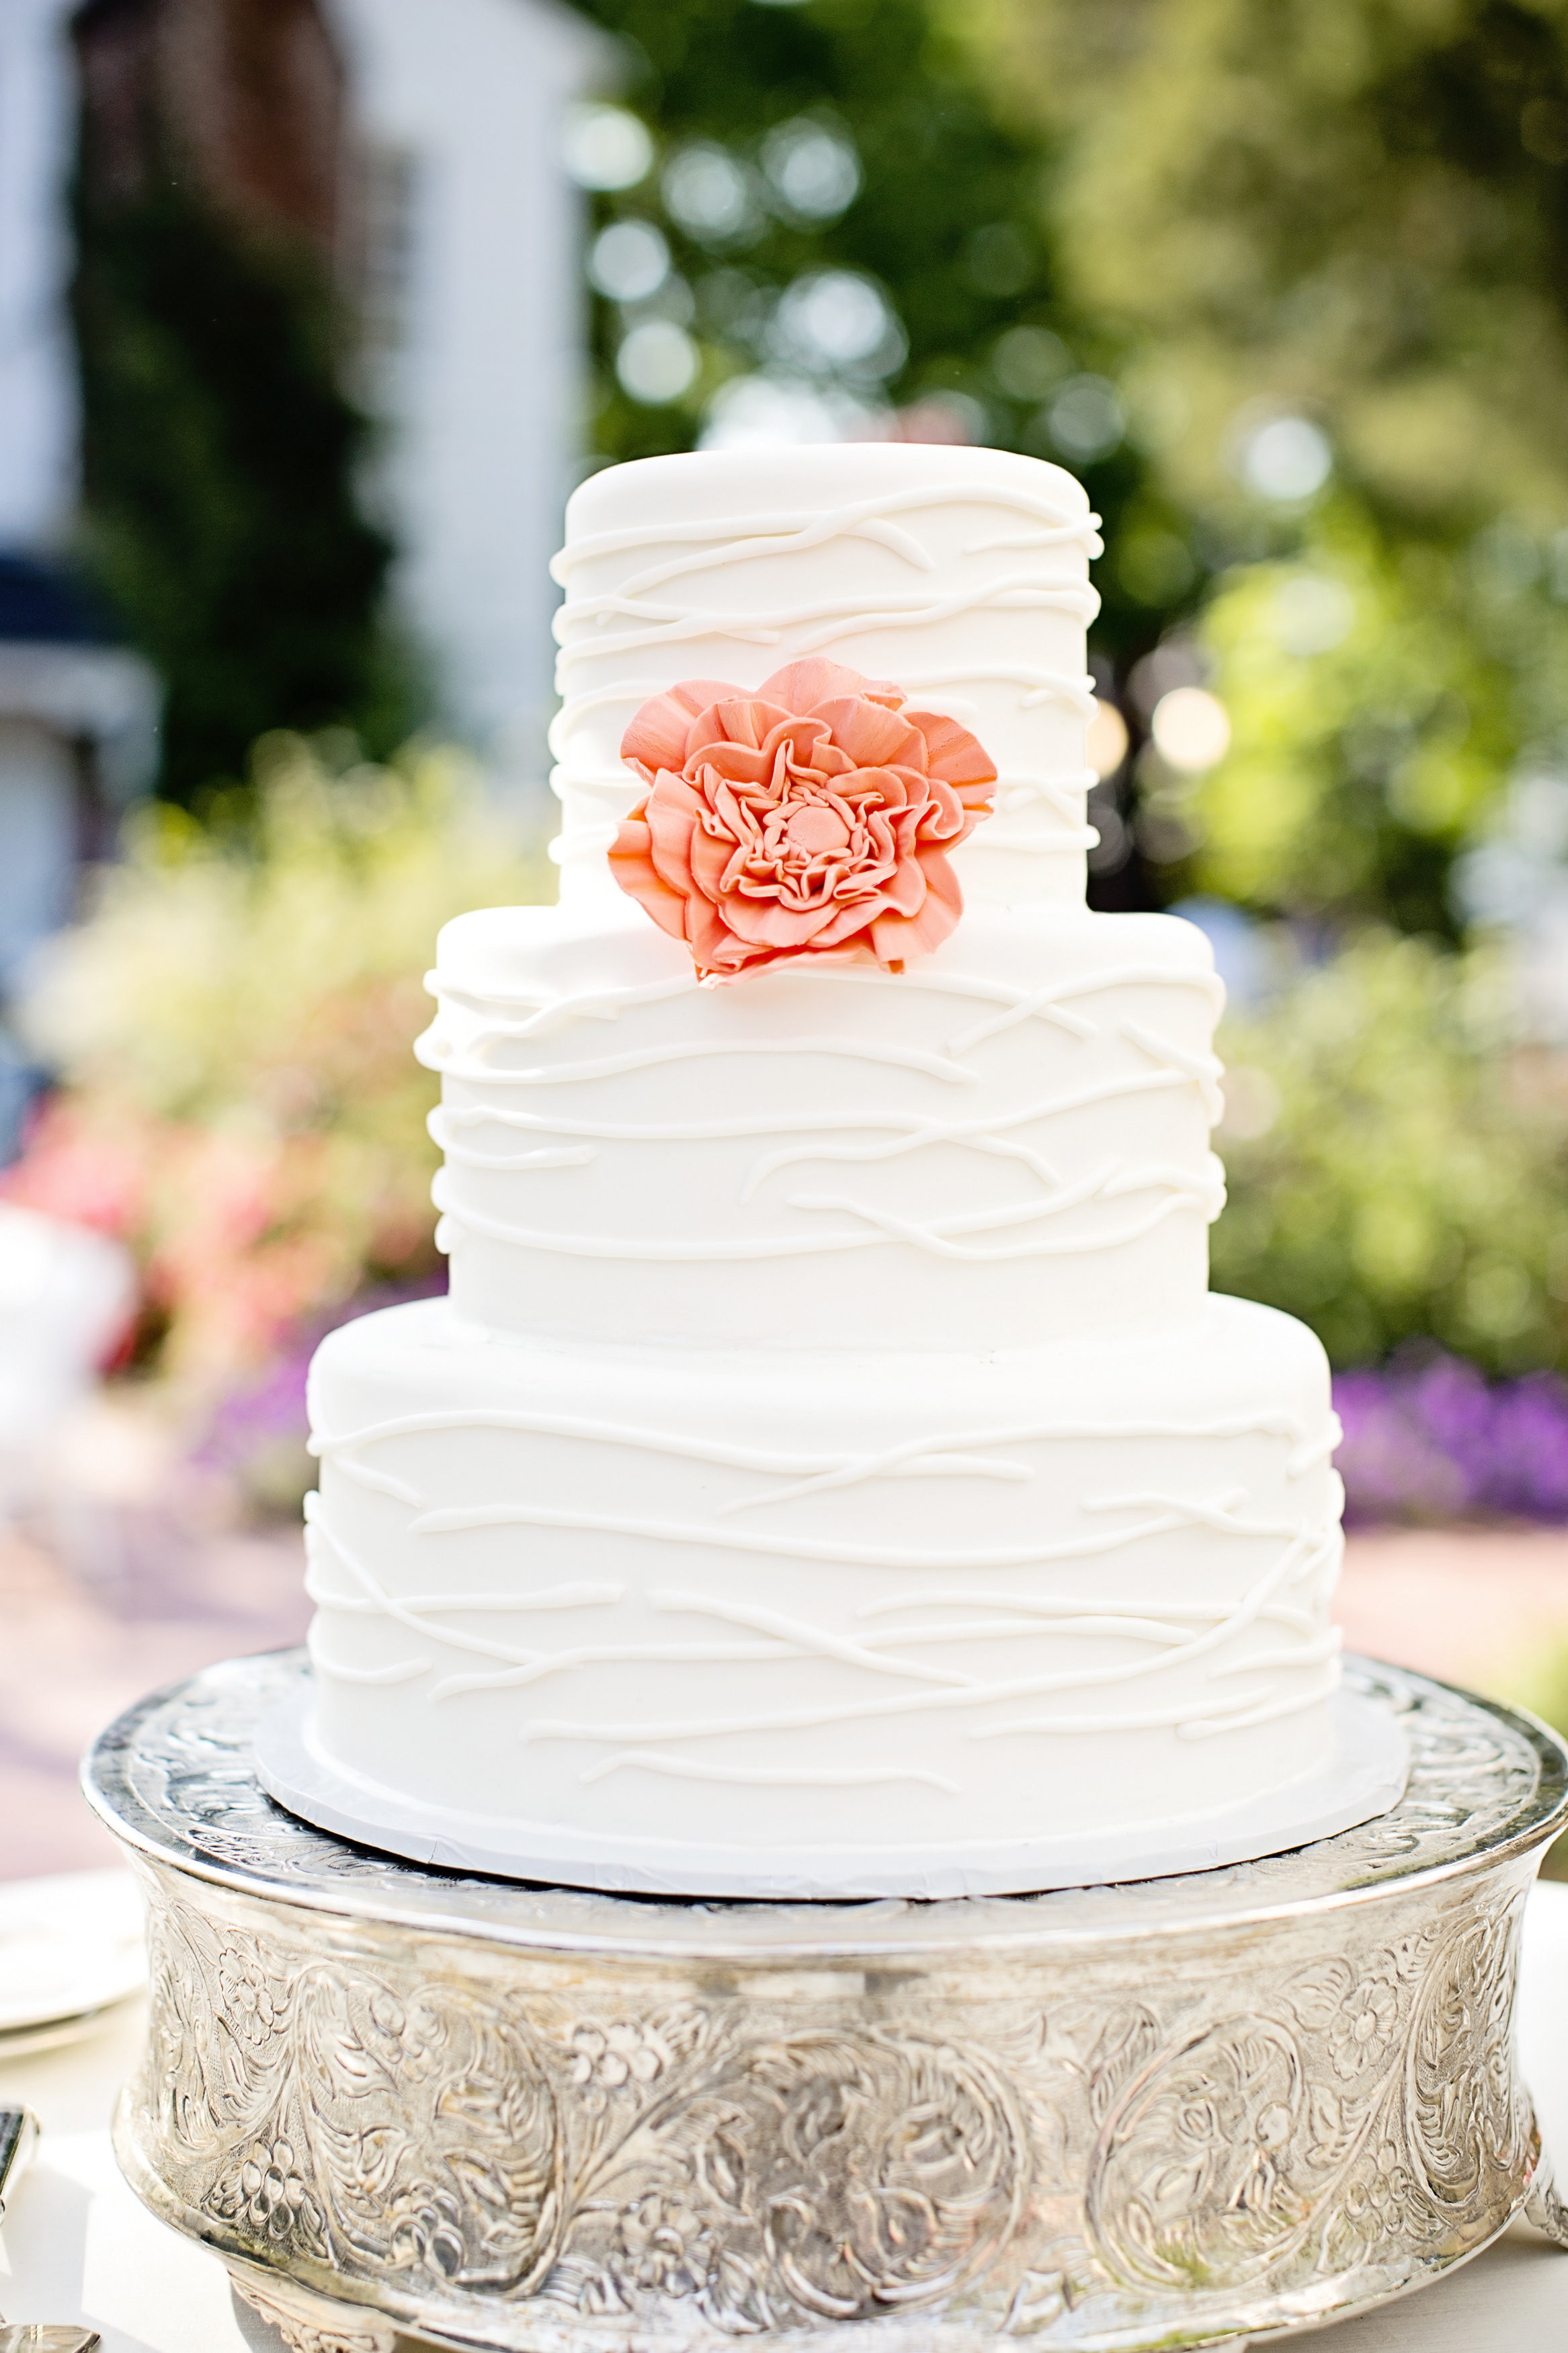 Simple Wedding Cakes With Flowers  Plant a flower on the wedding cake